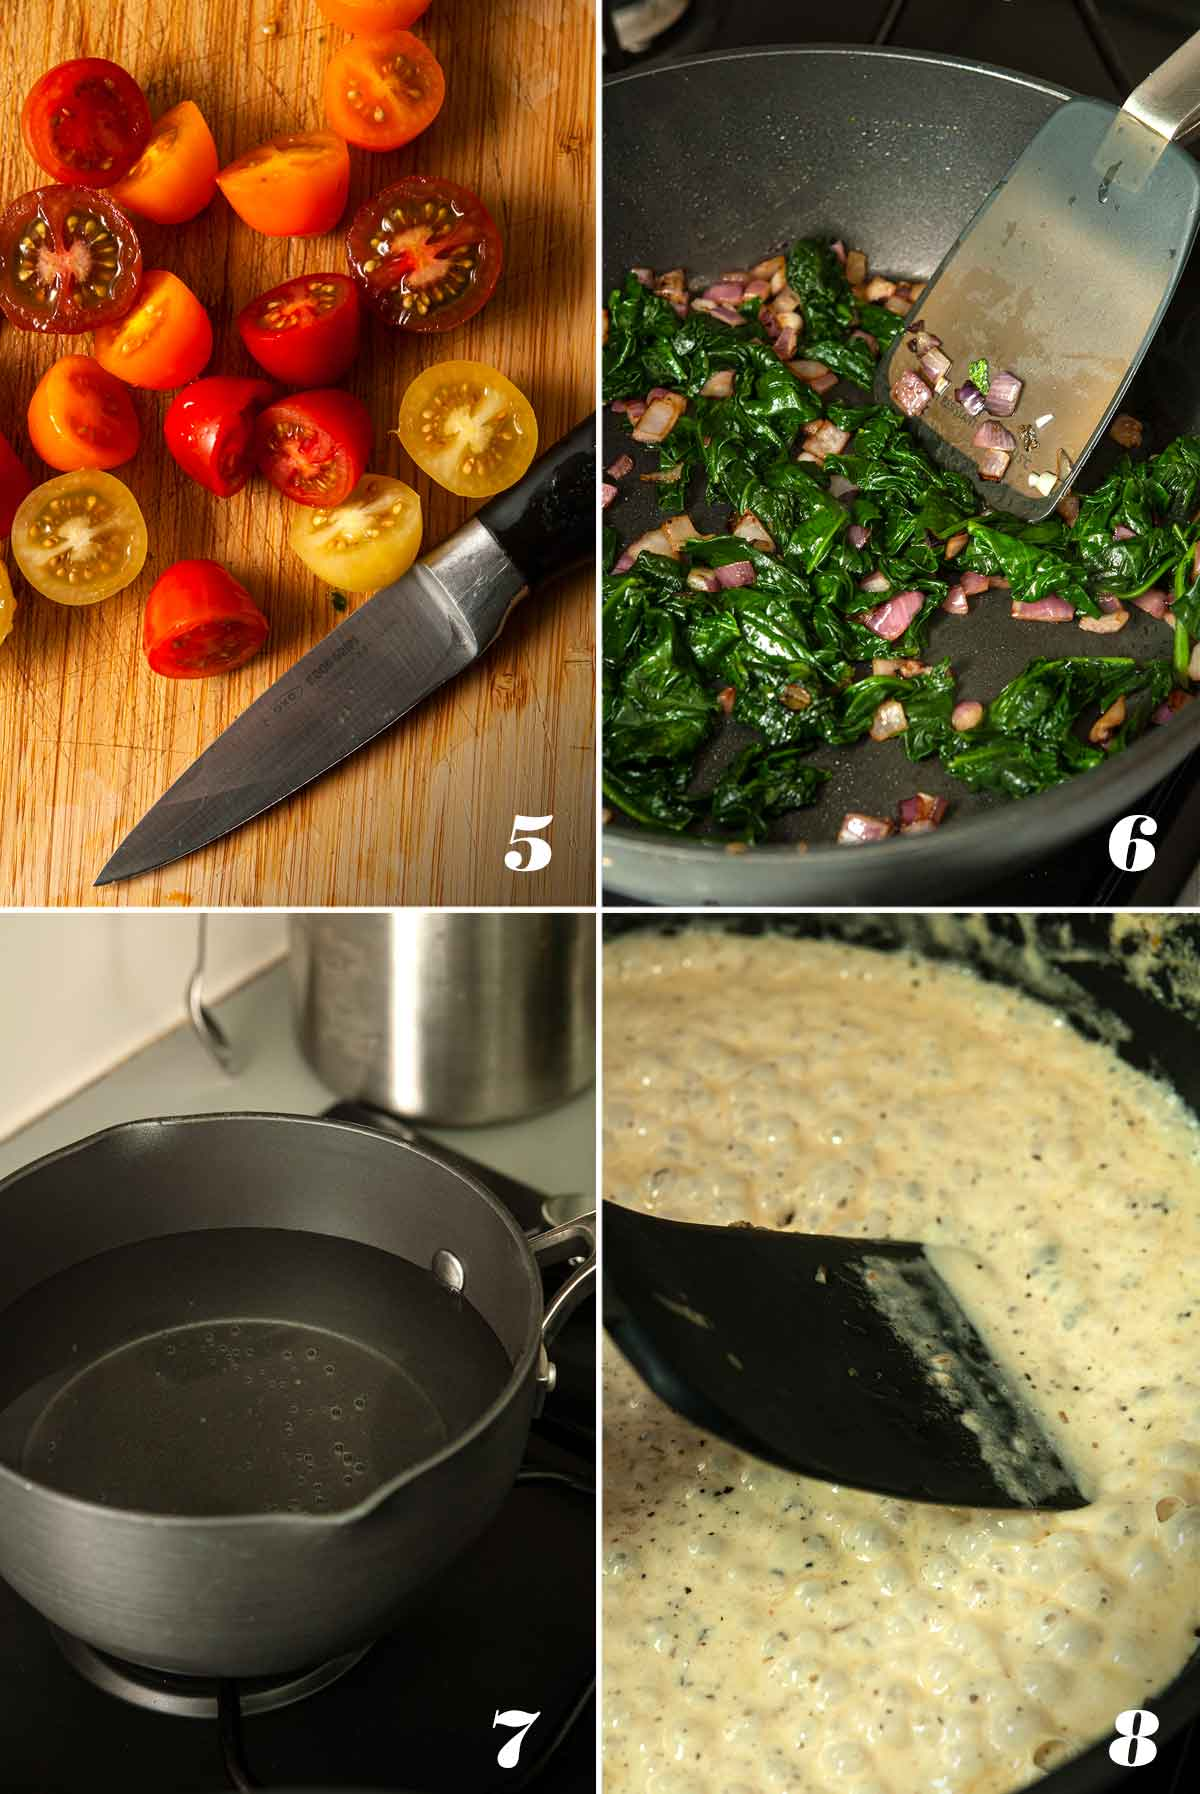 A collage of 4 numbered images showing how to cook ingredients.